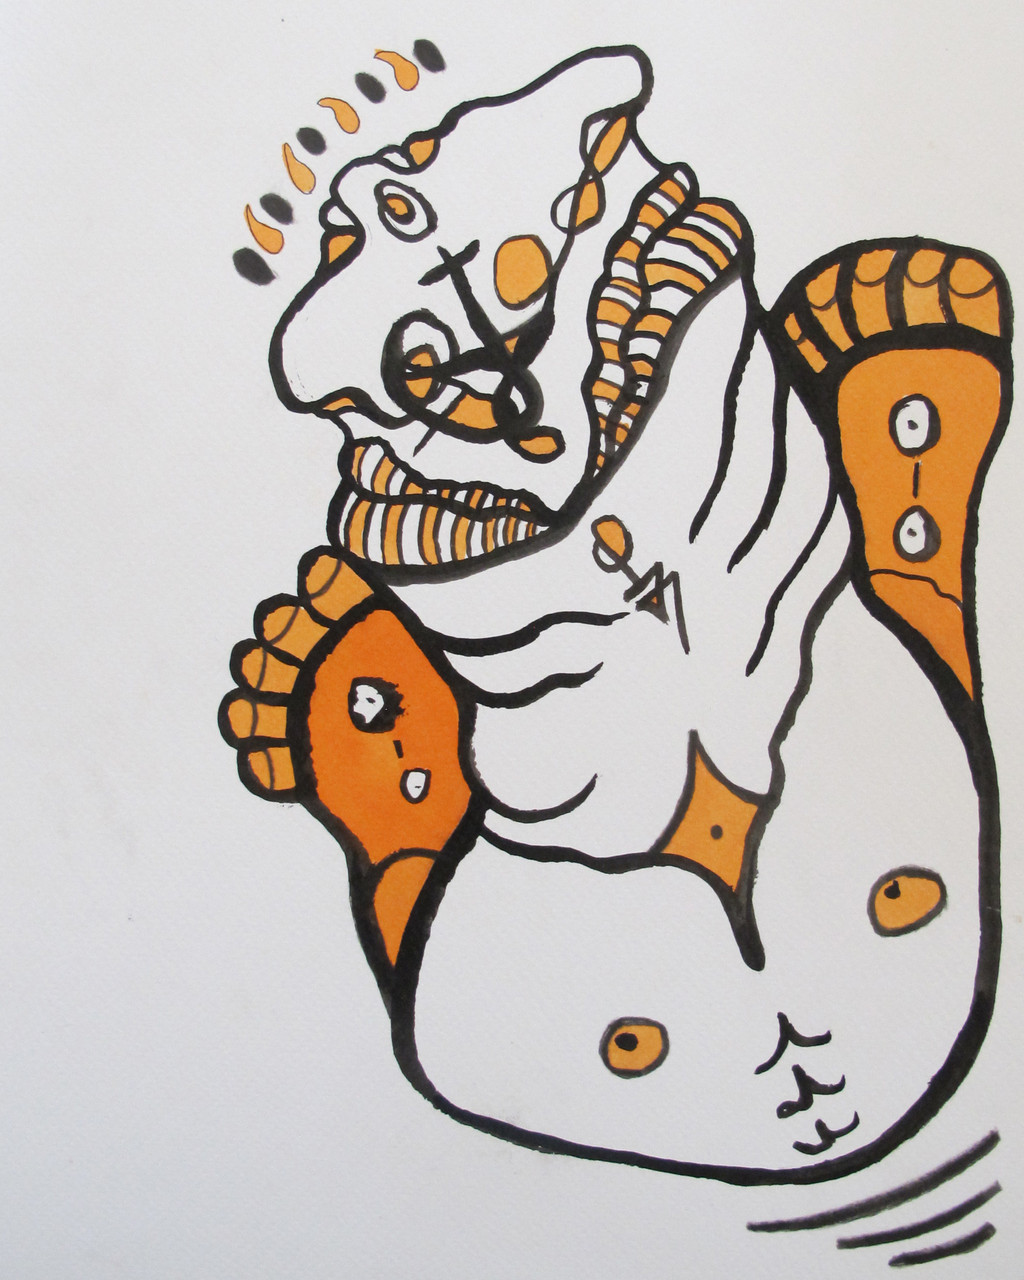 INDIEN SPIRITS 4, 320 X 240 mm, Ink on paper, 2014